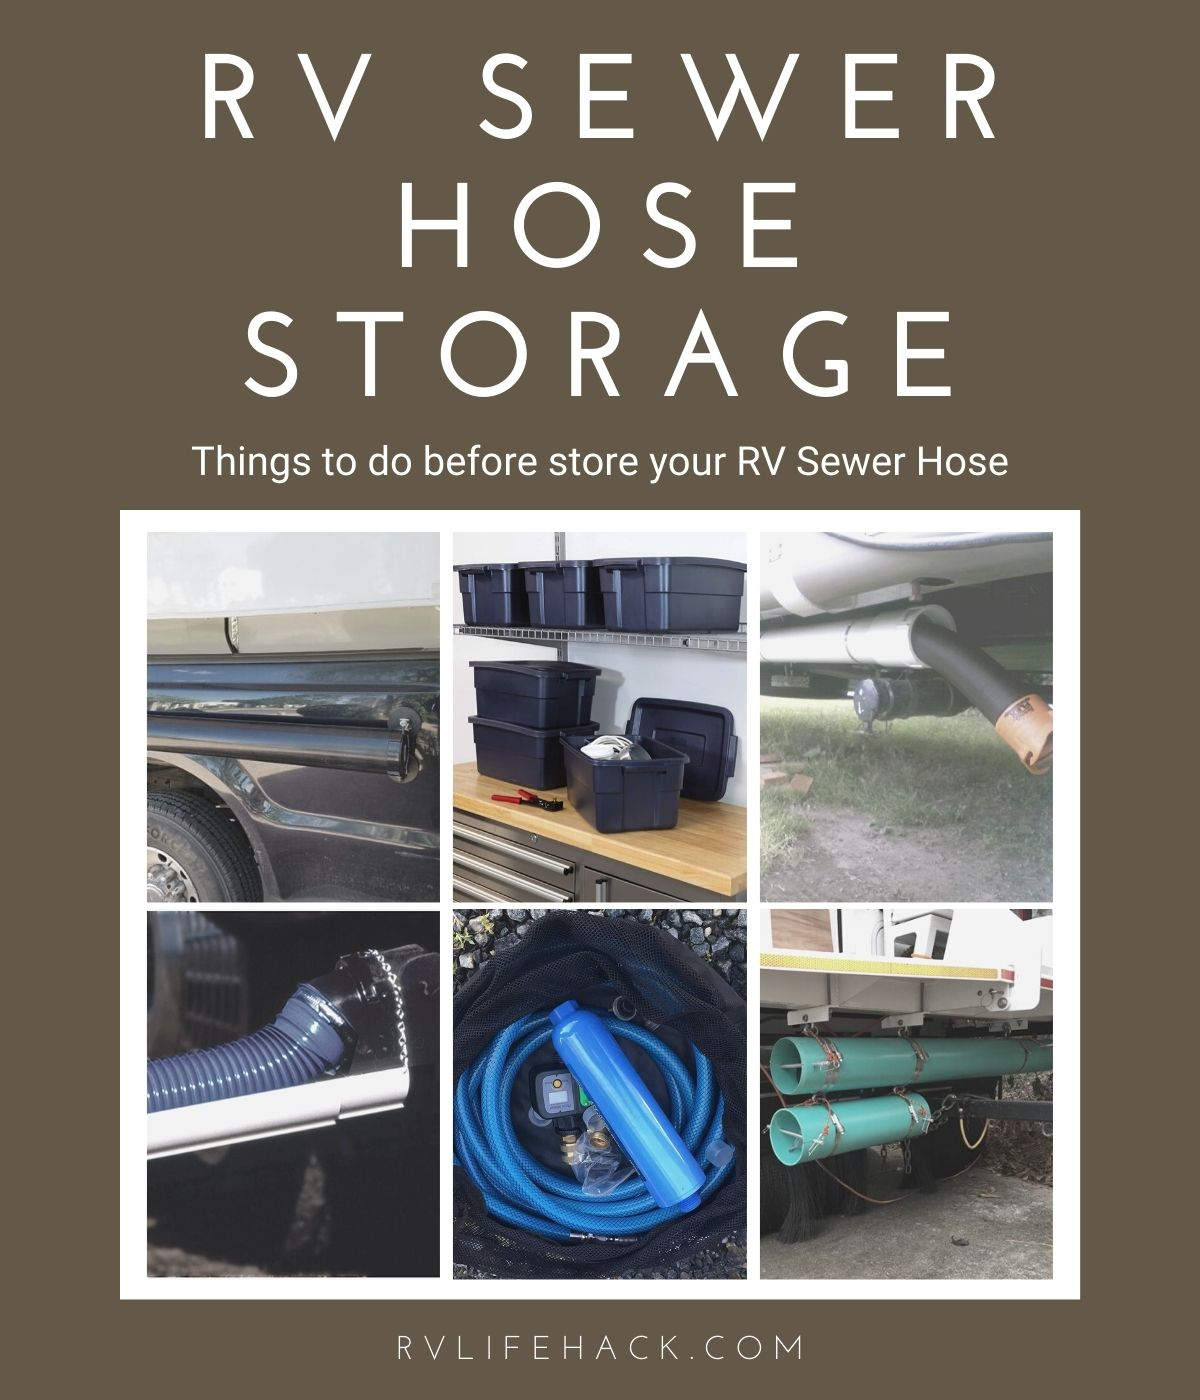 RV Sewer Hose Storage Ideas for New Campers 2021